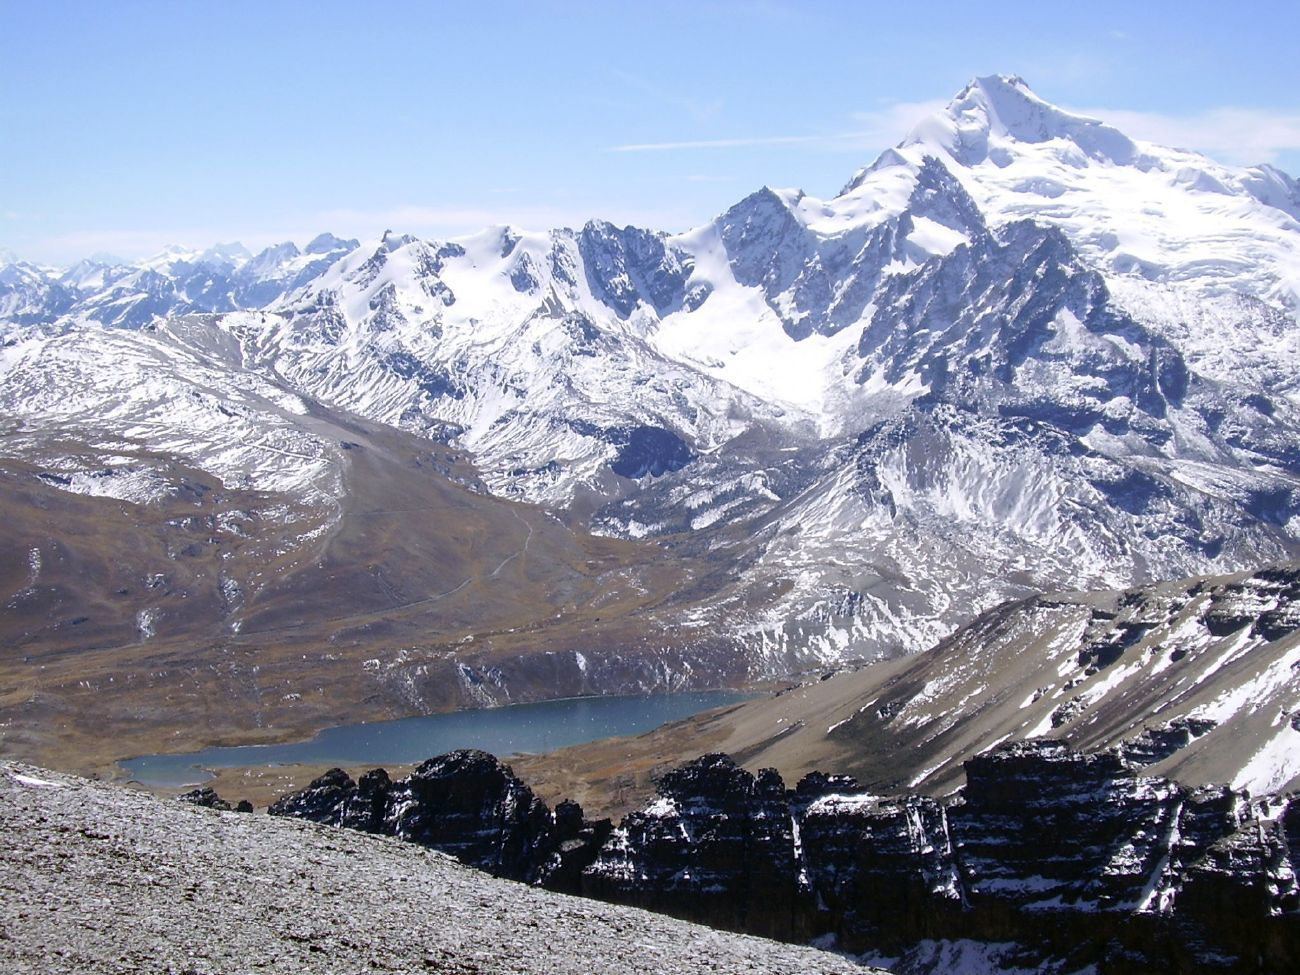 Bolivian Andes Bolivia Andes Mountains Andes